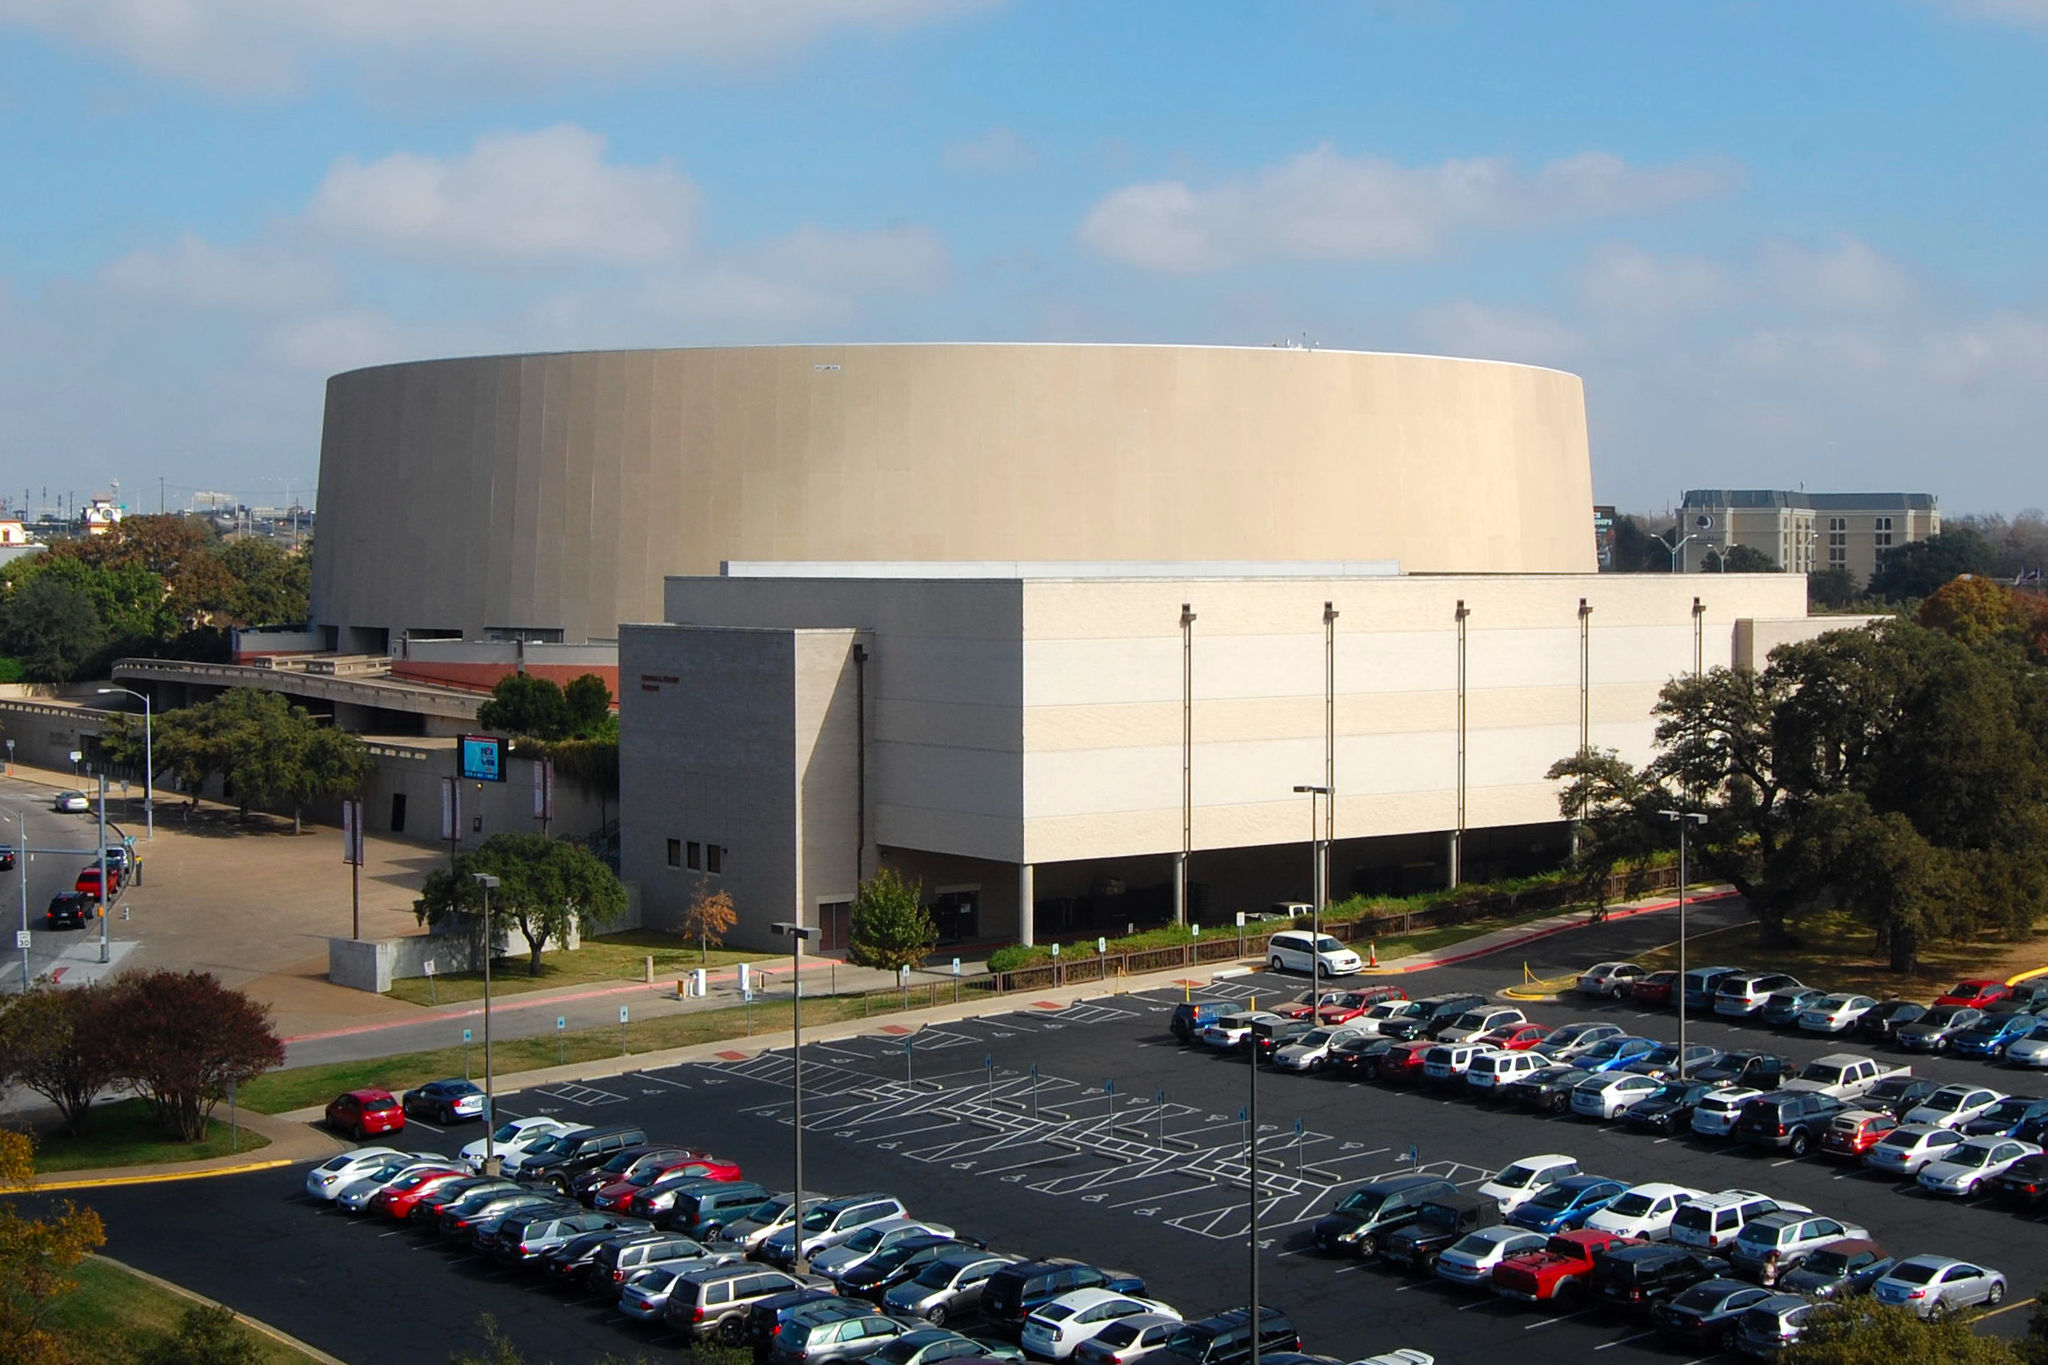 Large, round, windowless building with parking lot and garage in front